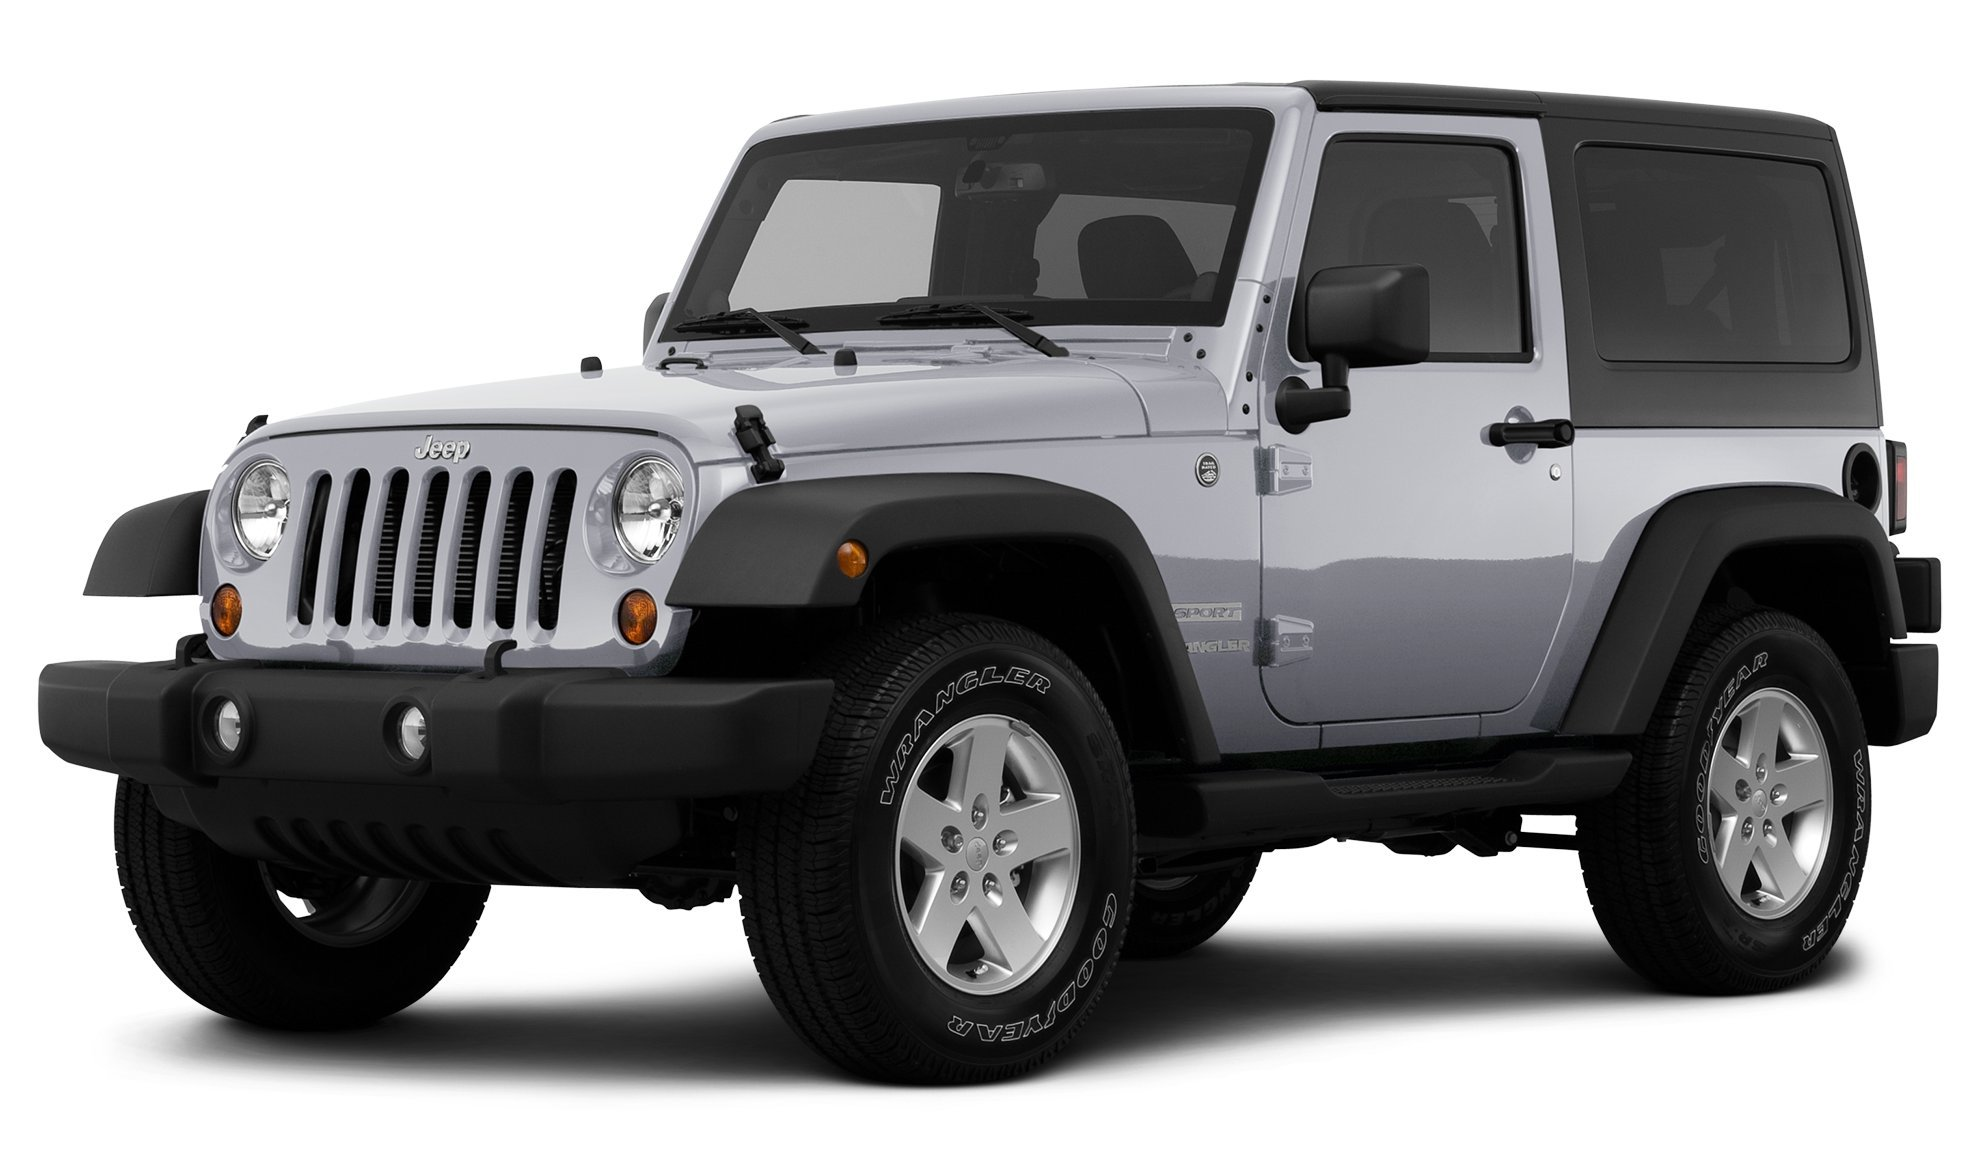 2013 Jeep Wrangler Freedom Edition, 4 Wheel Drive 2 Door